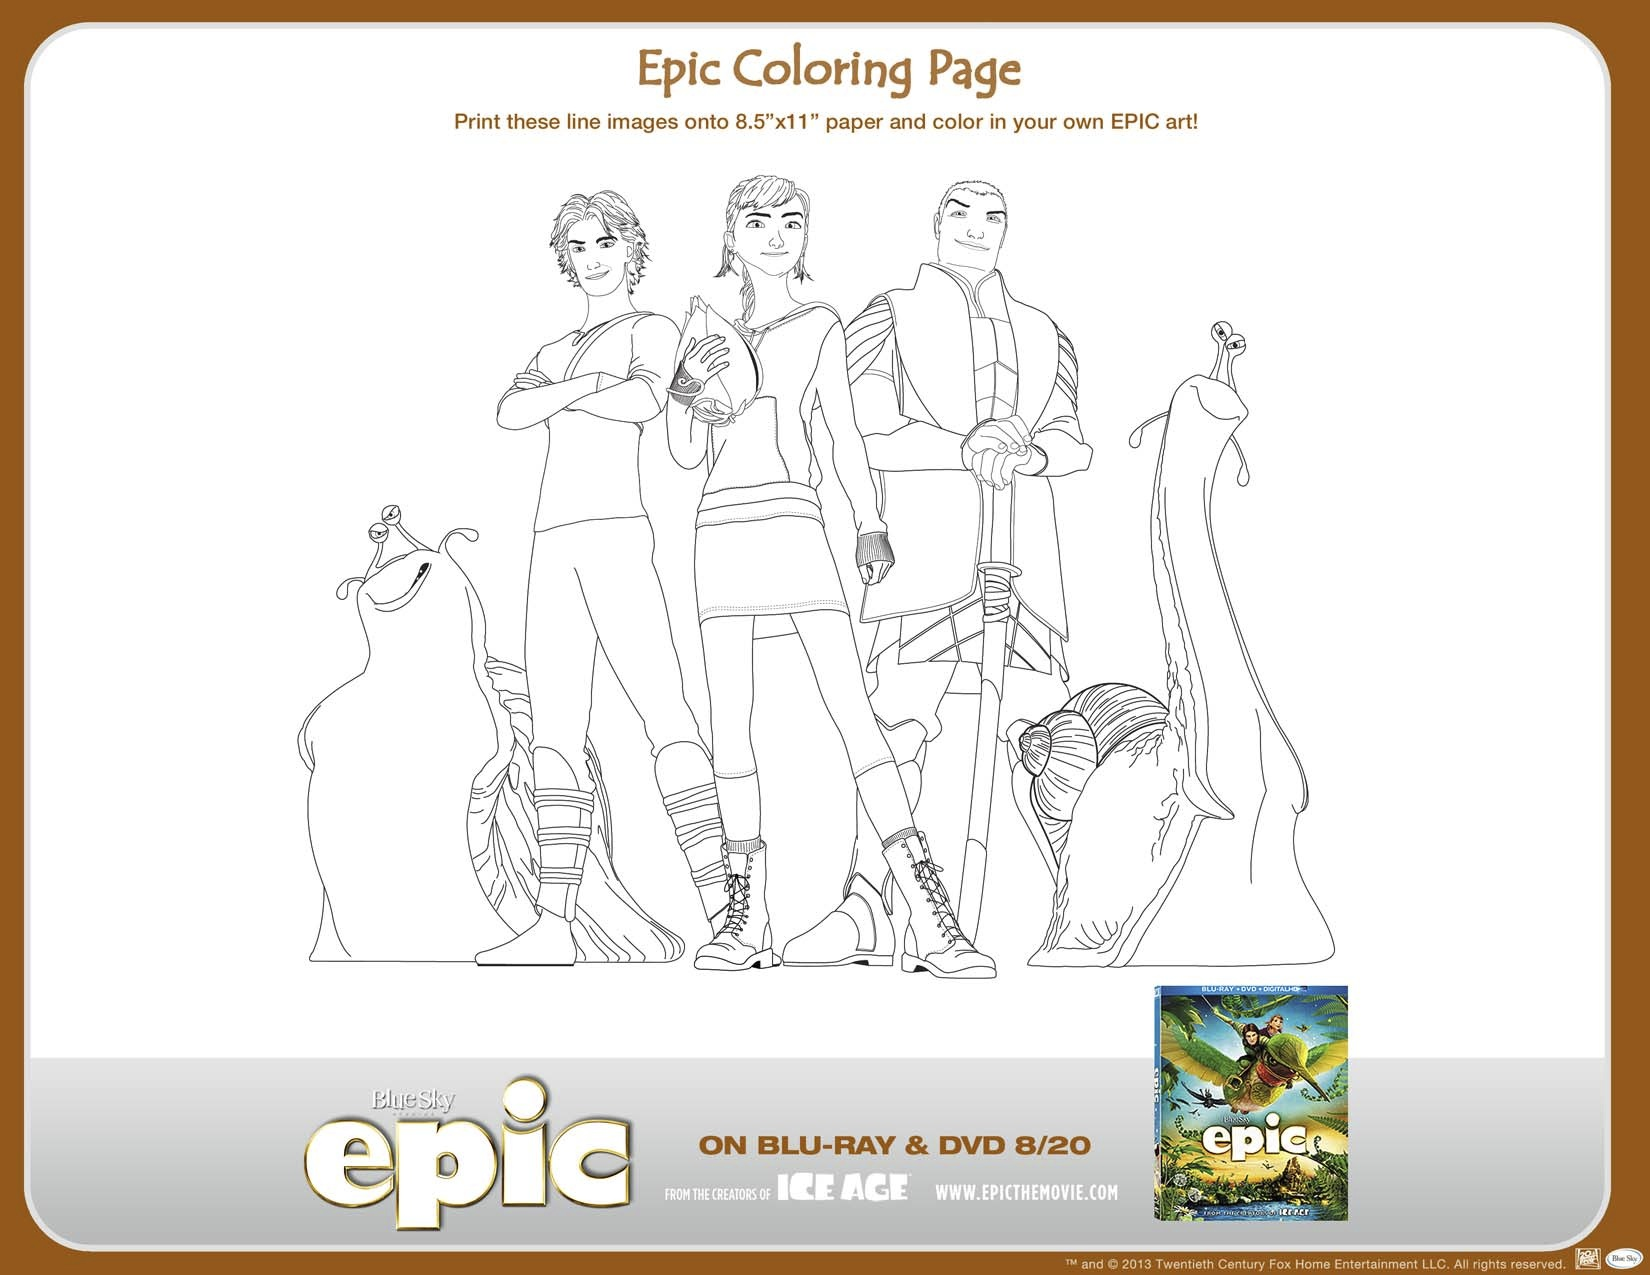 Enterteenmentnewscom Epic On Blu Ray And Dvd Feature